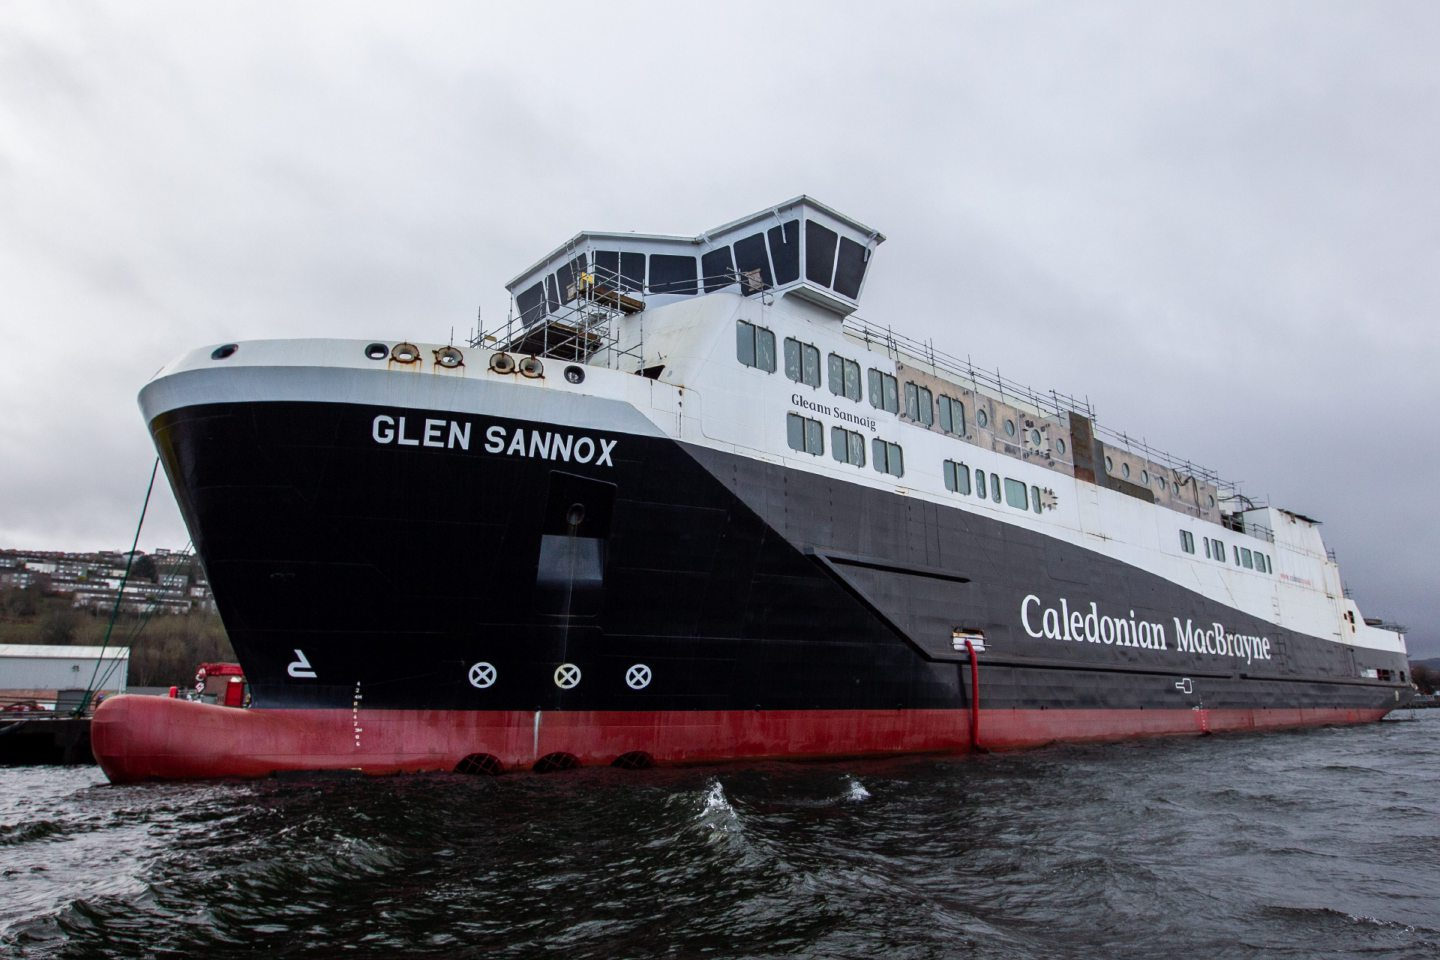 One of the two Calmac ferries being built at Ferguson Marine in Port Glasgow.